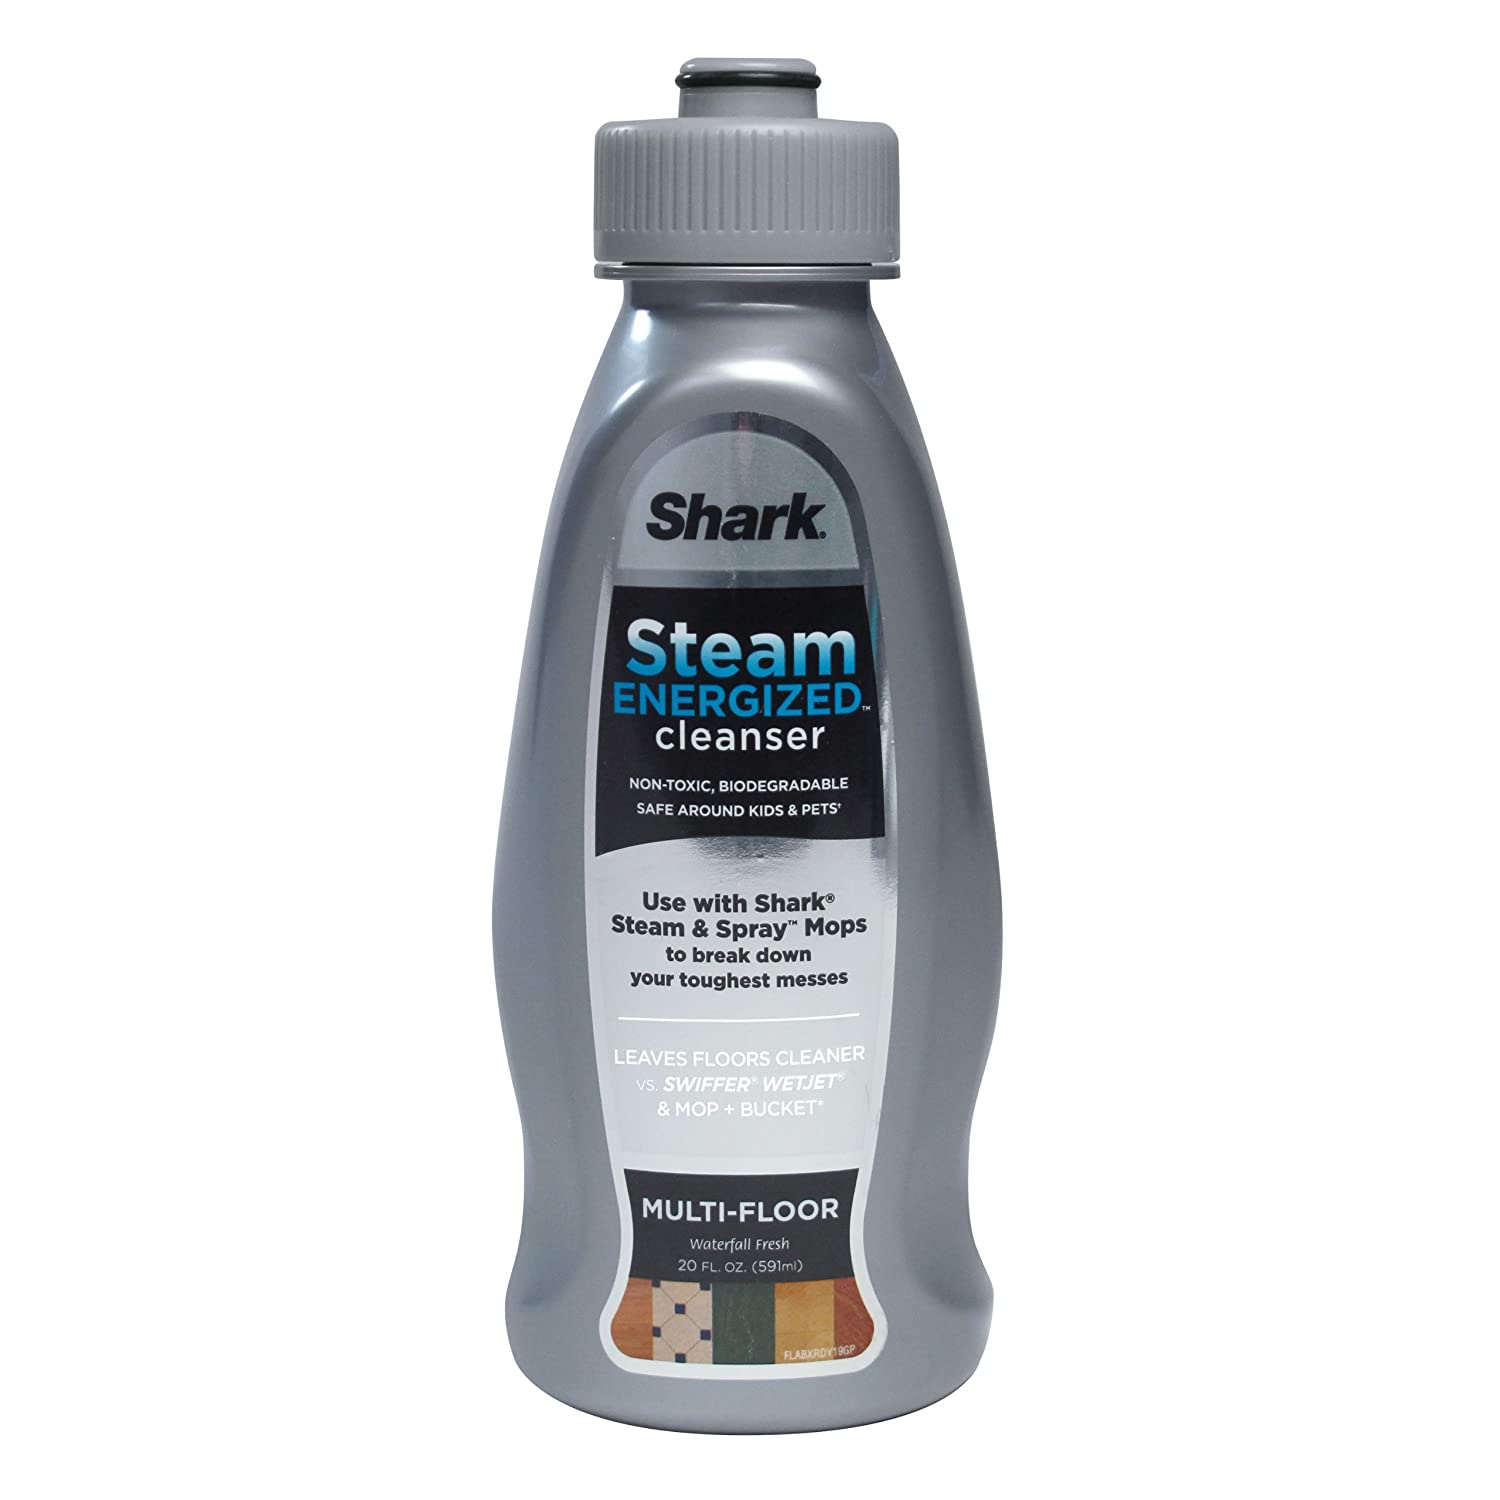 Shark Steam Energized Cleanser Multi floor Amazon Home & Kitchen